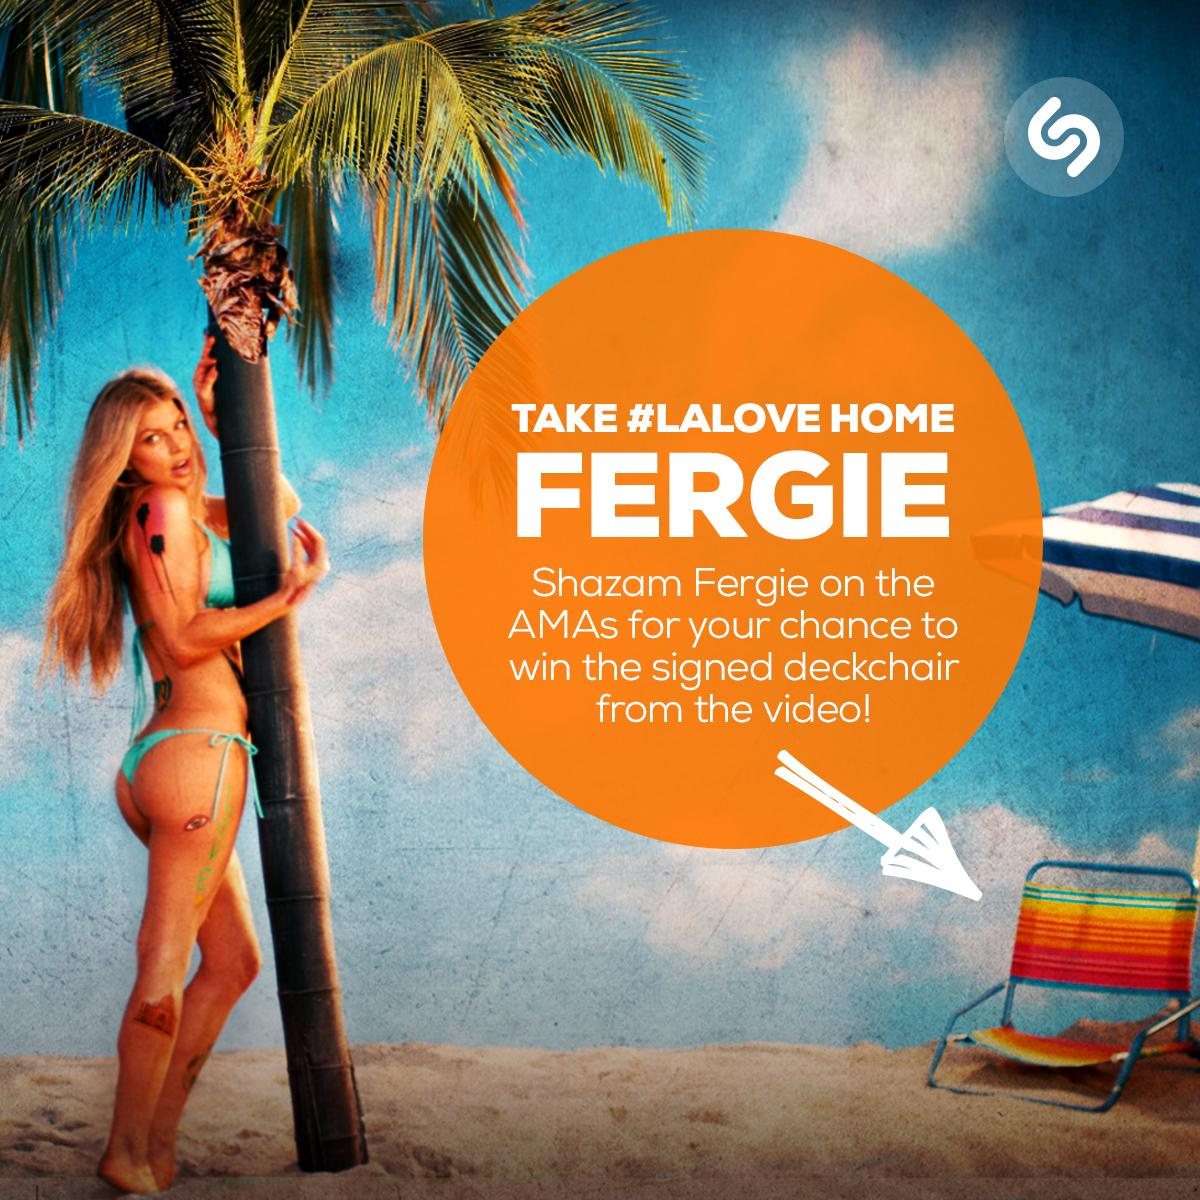 RT @Shazam: Take some #LALove home - #Shazam @Fergie on @TheAMAs now for a chance to win the signed beach chair from her video! http://t.co…